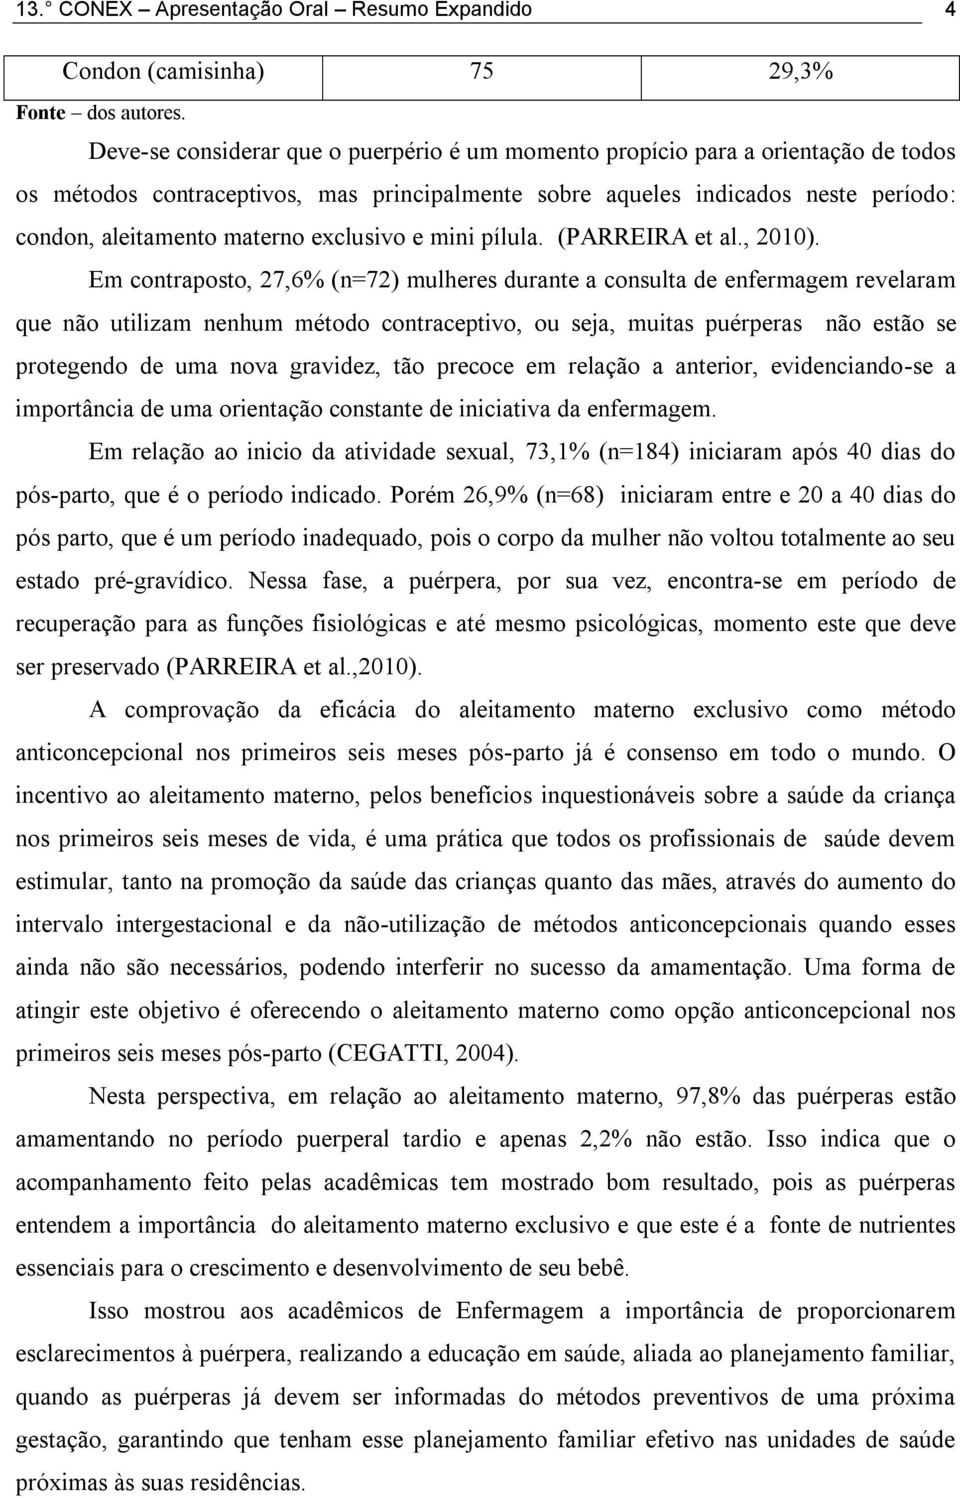 exclusivo e mini pílula. (PARREIRA et al., 2010).